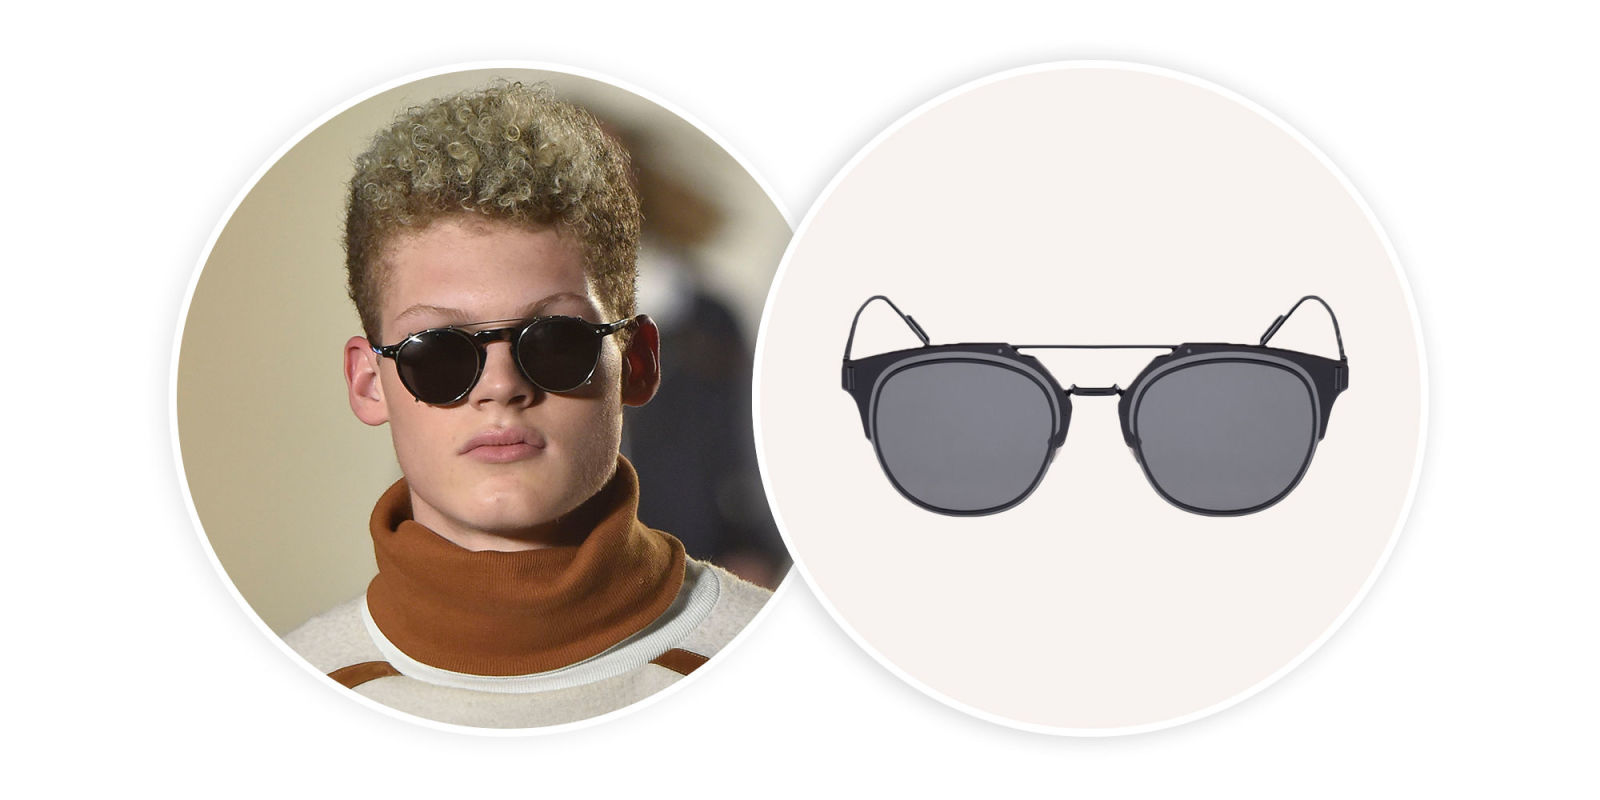 Mens Sunglasses  10 best sunglasses for men in 2017 stylish and mens